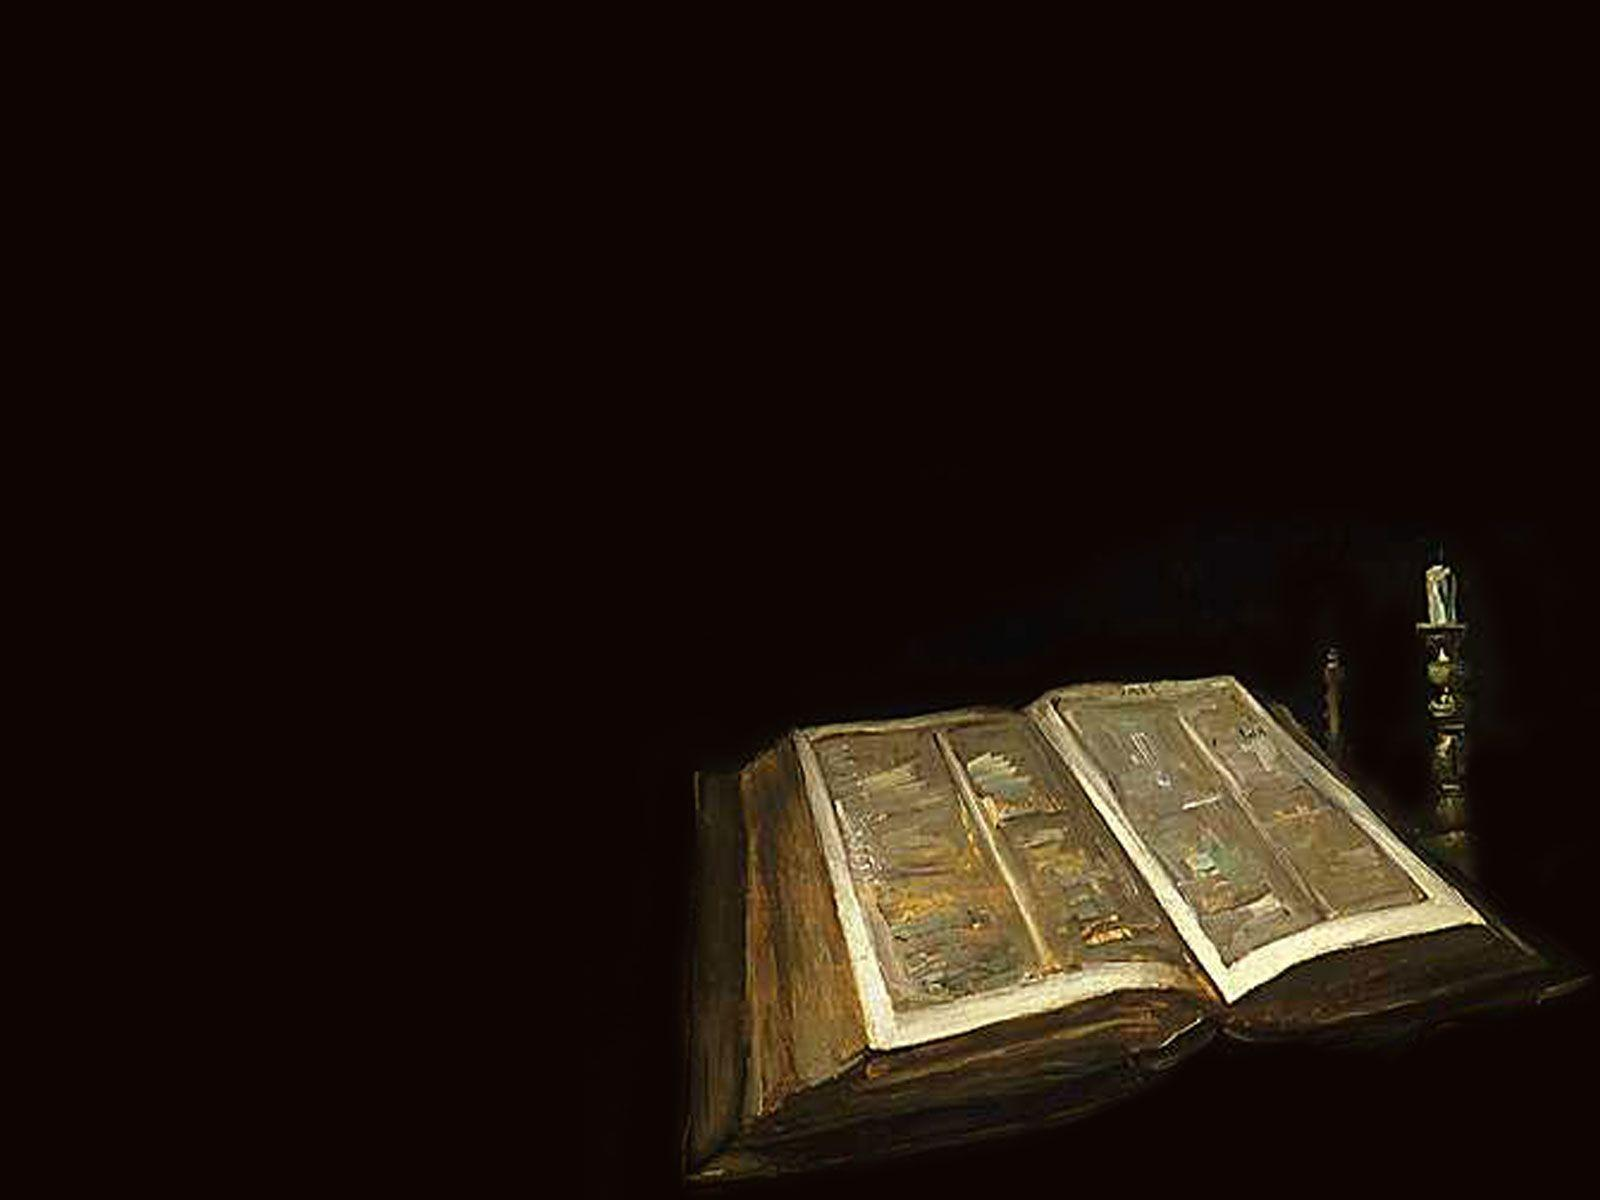 Holy Bible Wallpapers 1600x1200